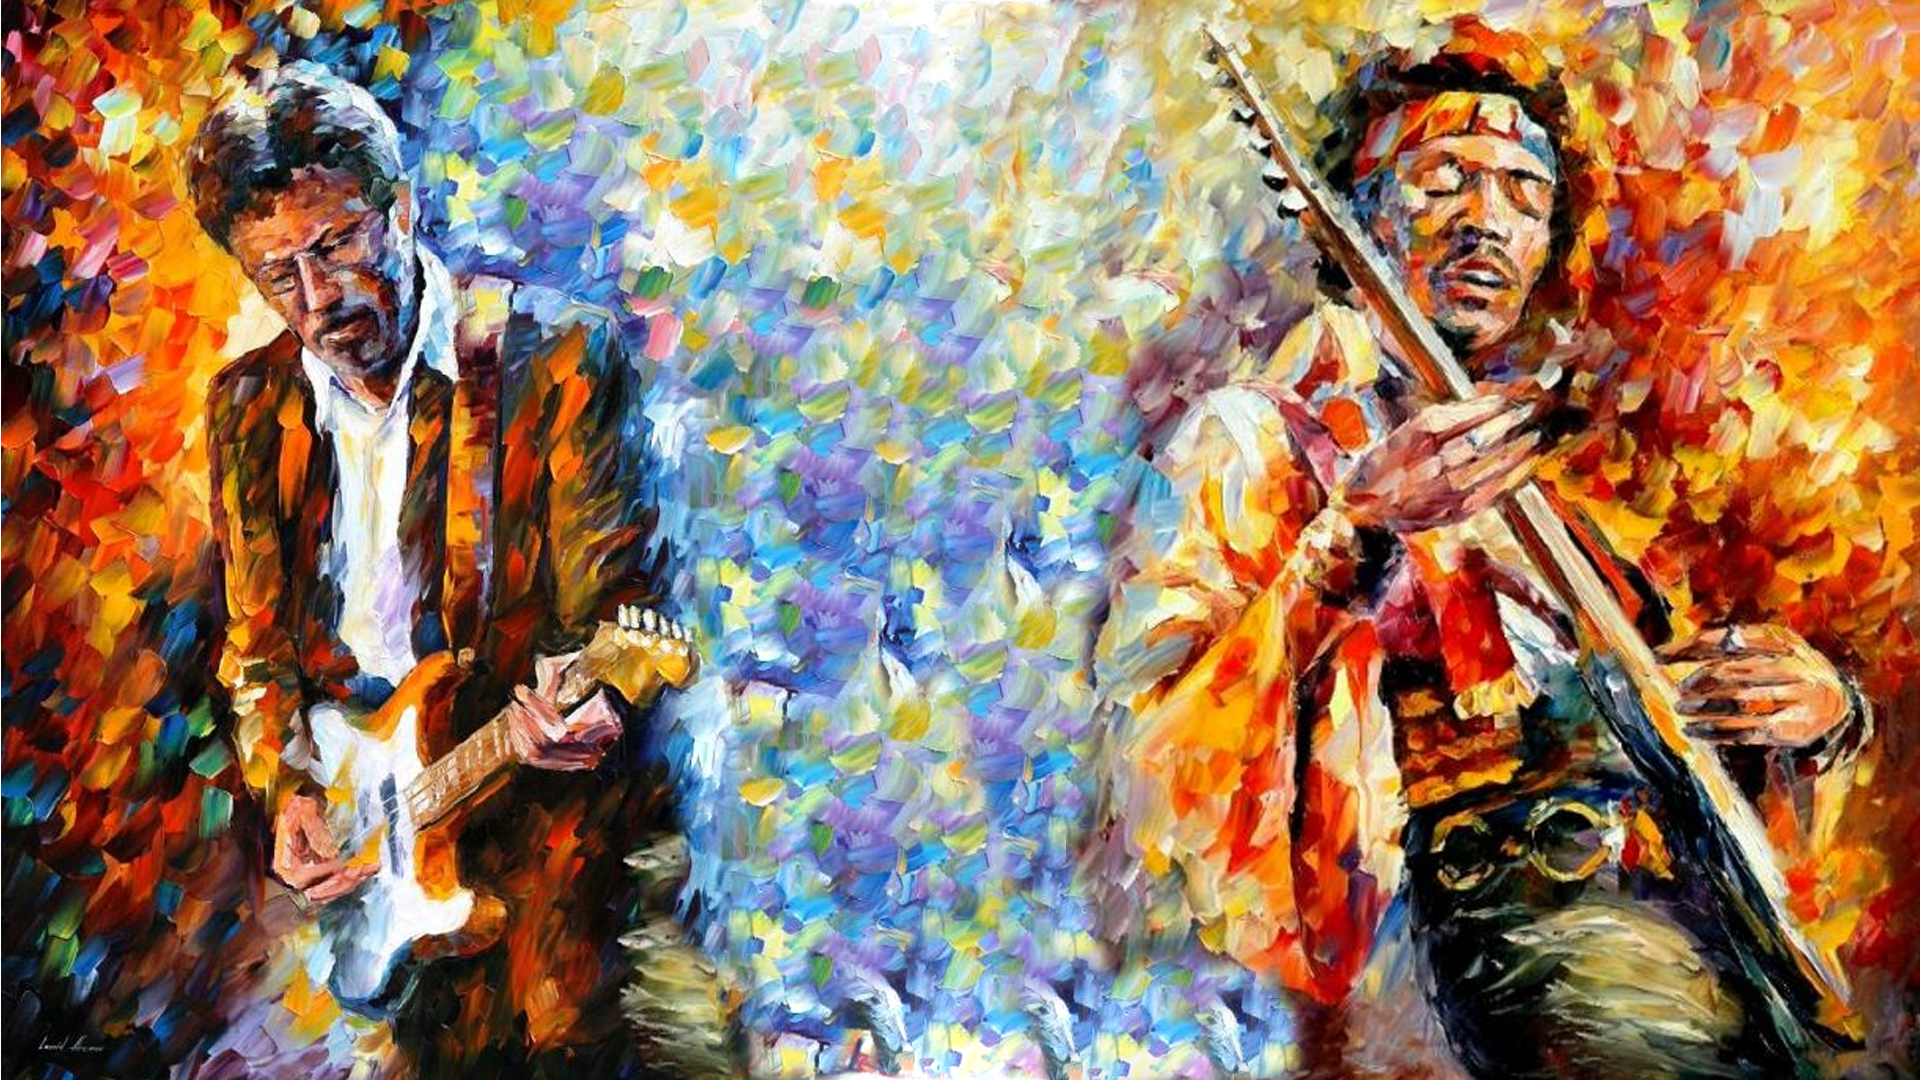 jimi hendrix wallpaper 10 - photo #43